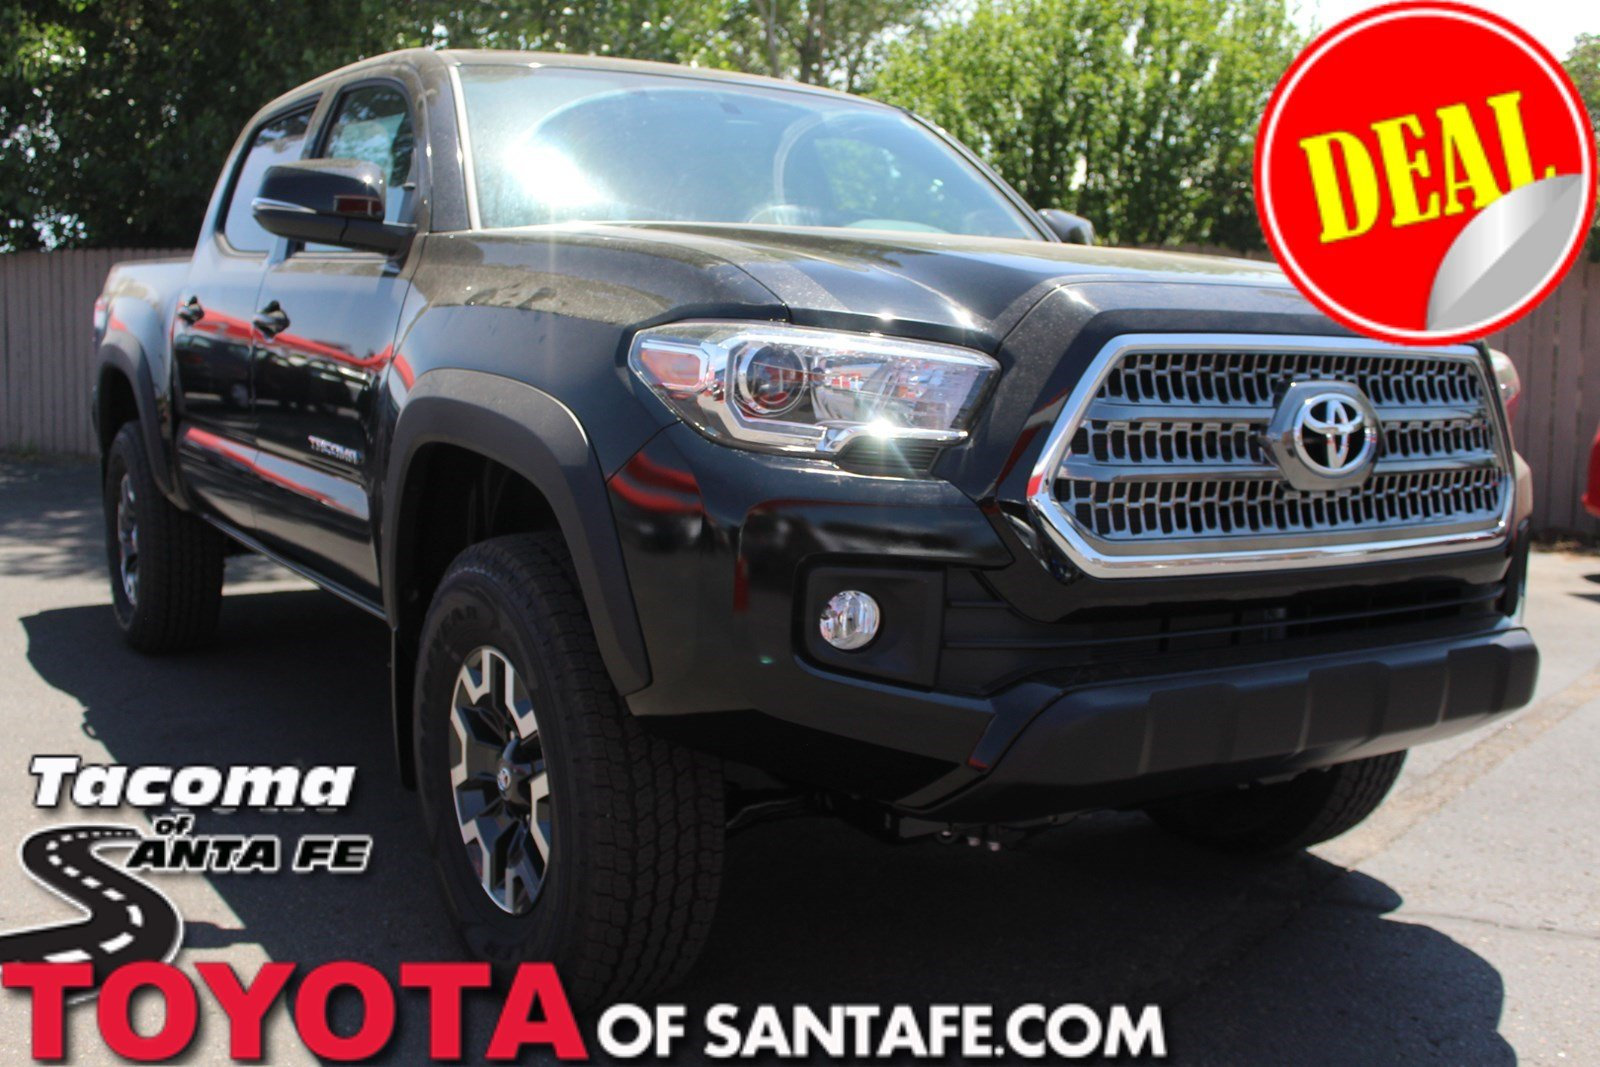 New 2017 Toyota Tacoma TRD Off Road Double Cab 5' Bed V6 4x4 AT Double Cab Truck